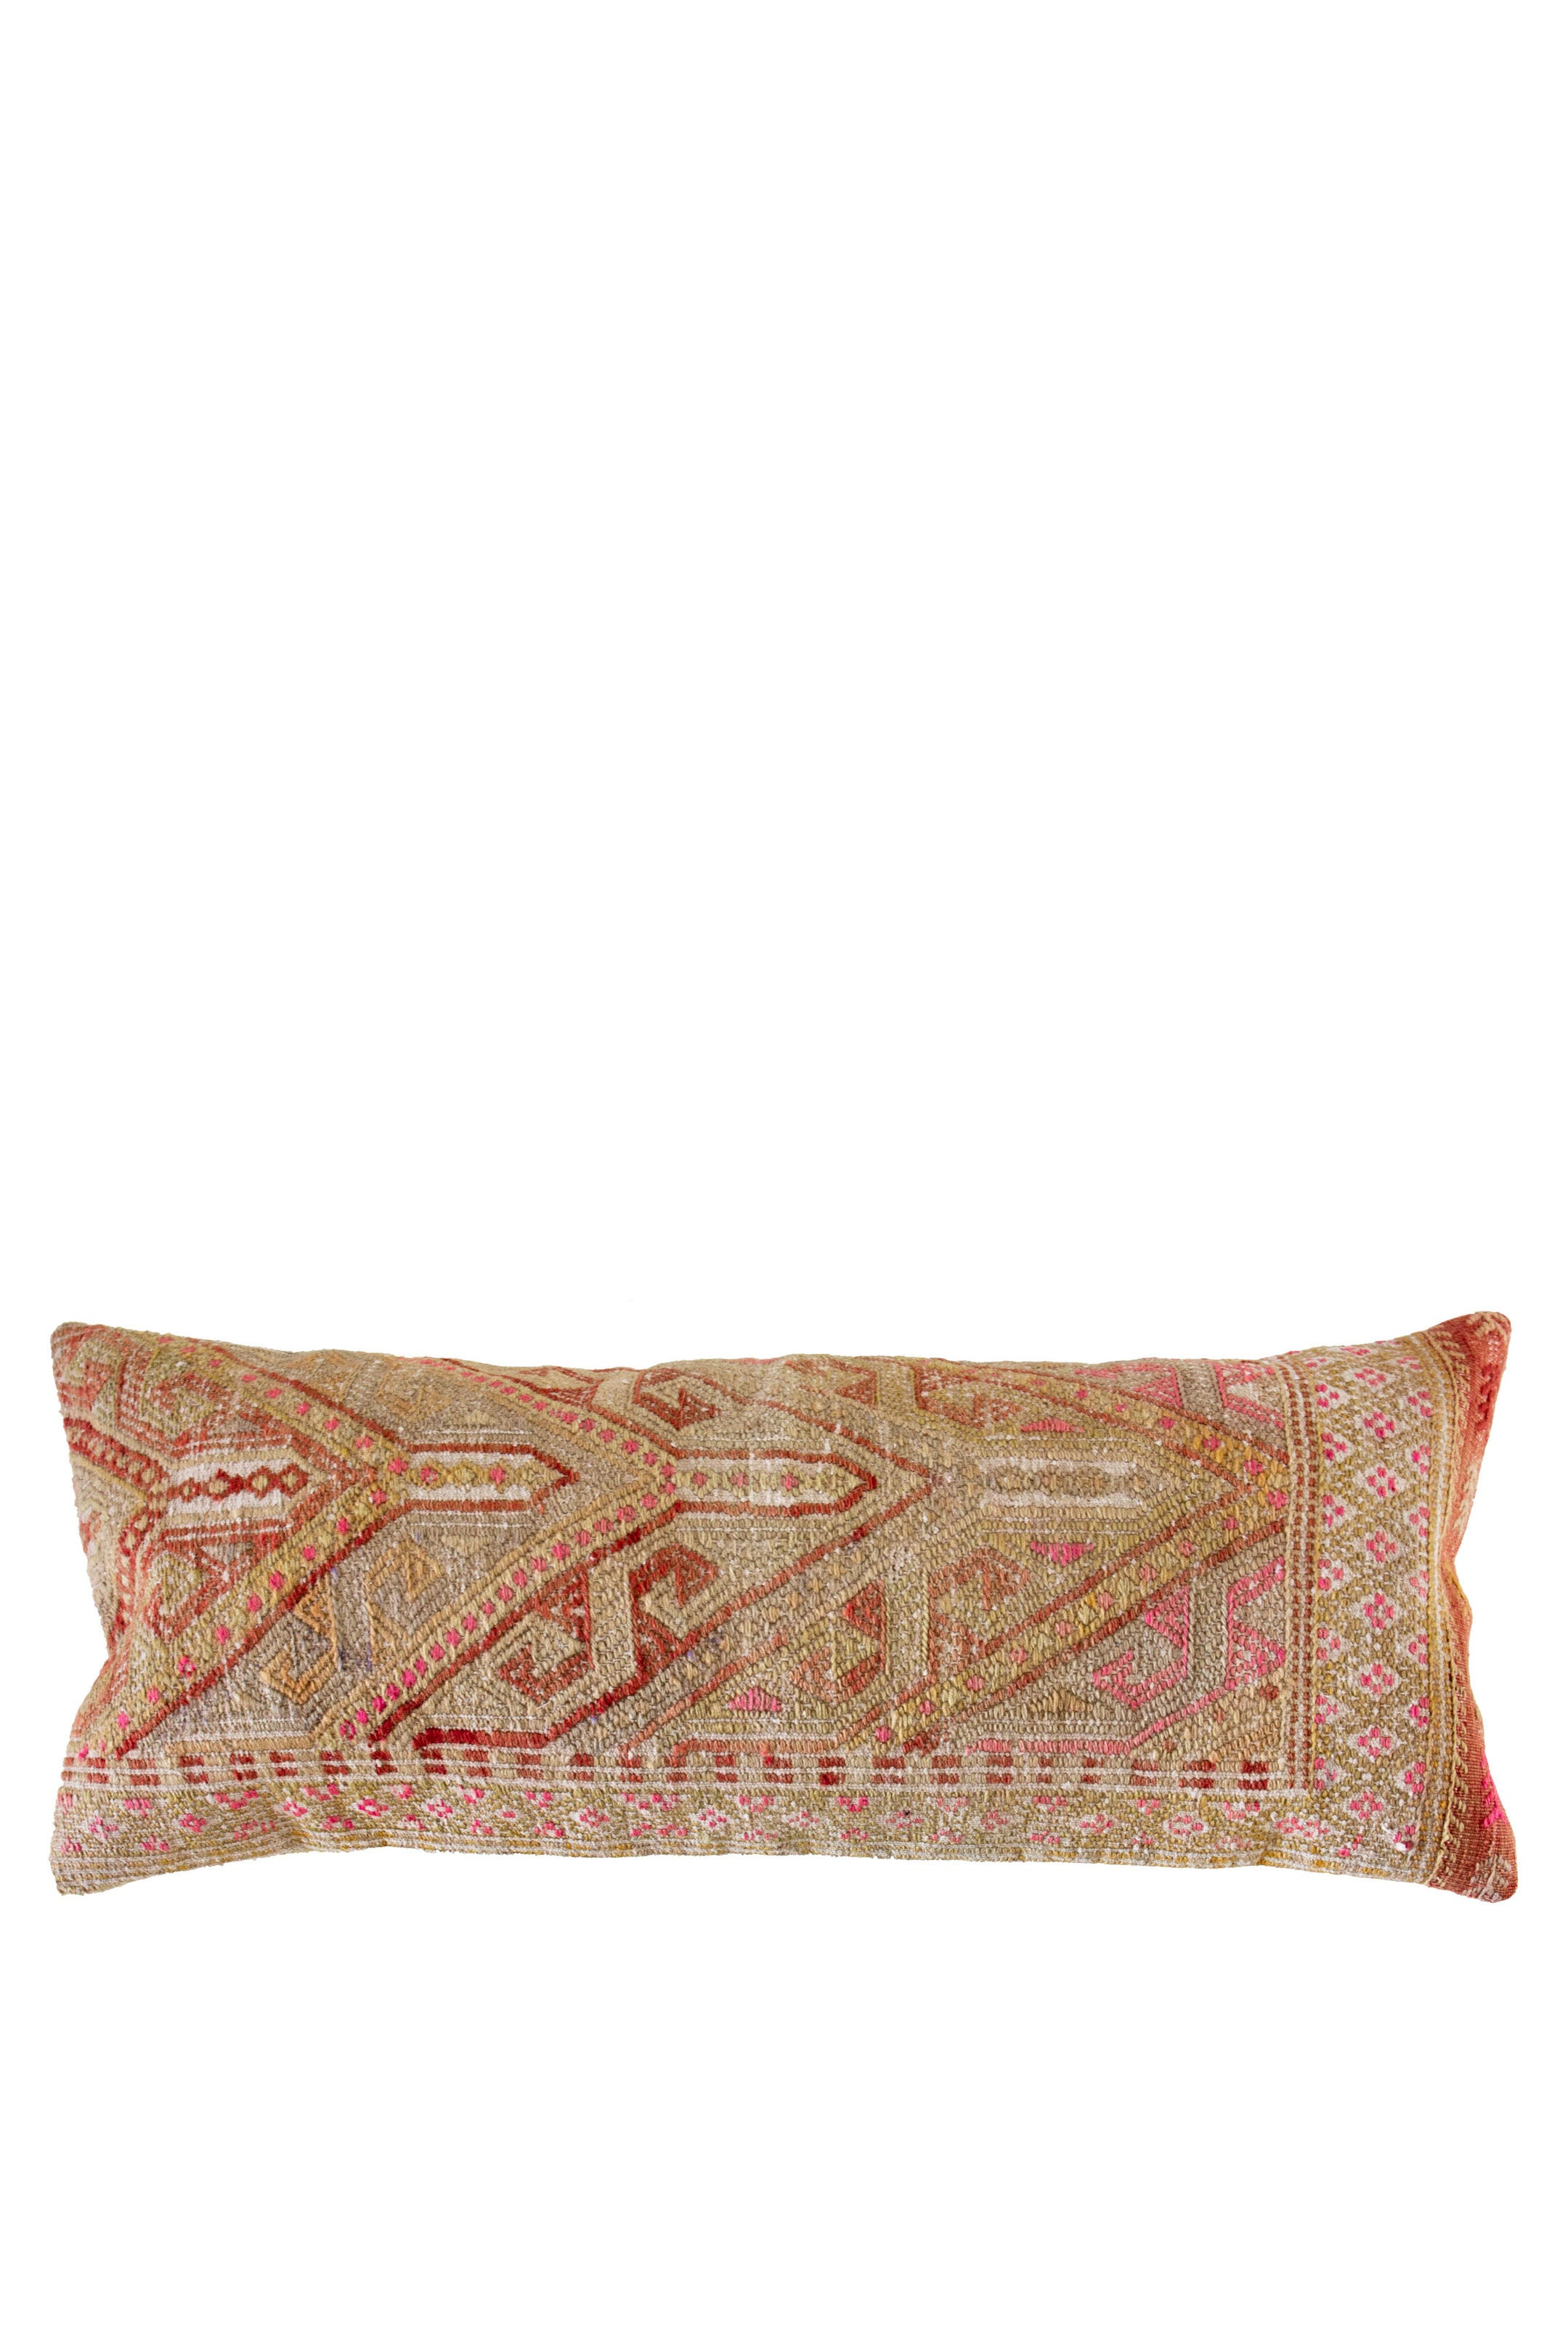 Halo Turkish Kilim Cushion